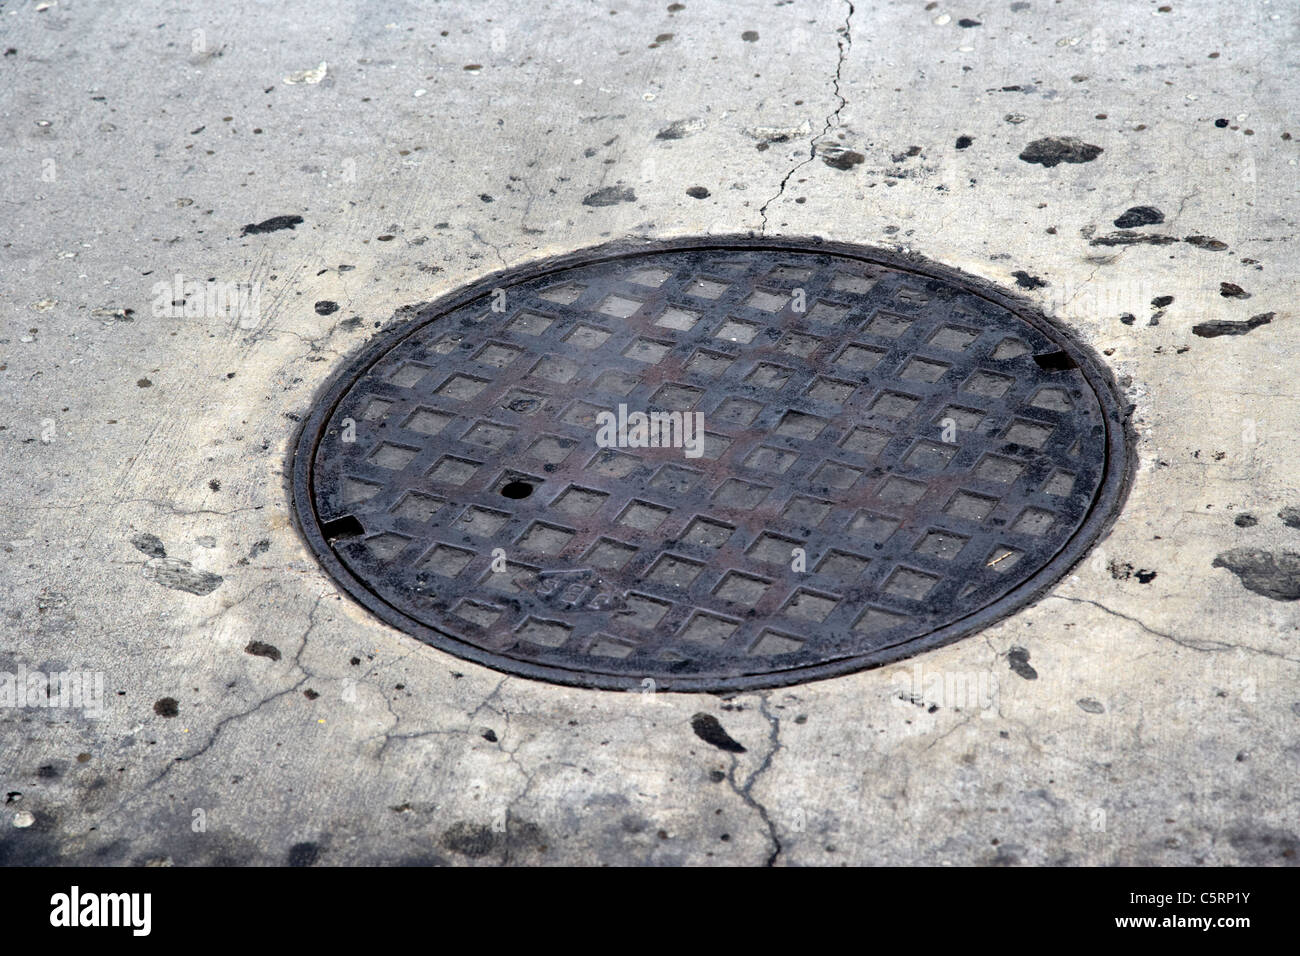 steam rising from metal manhole cover in the street Nashville Tennessee USA - Stock Image